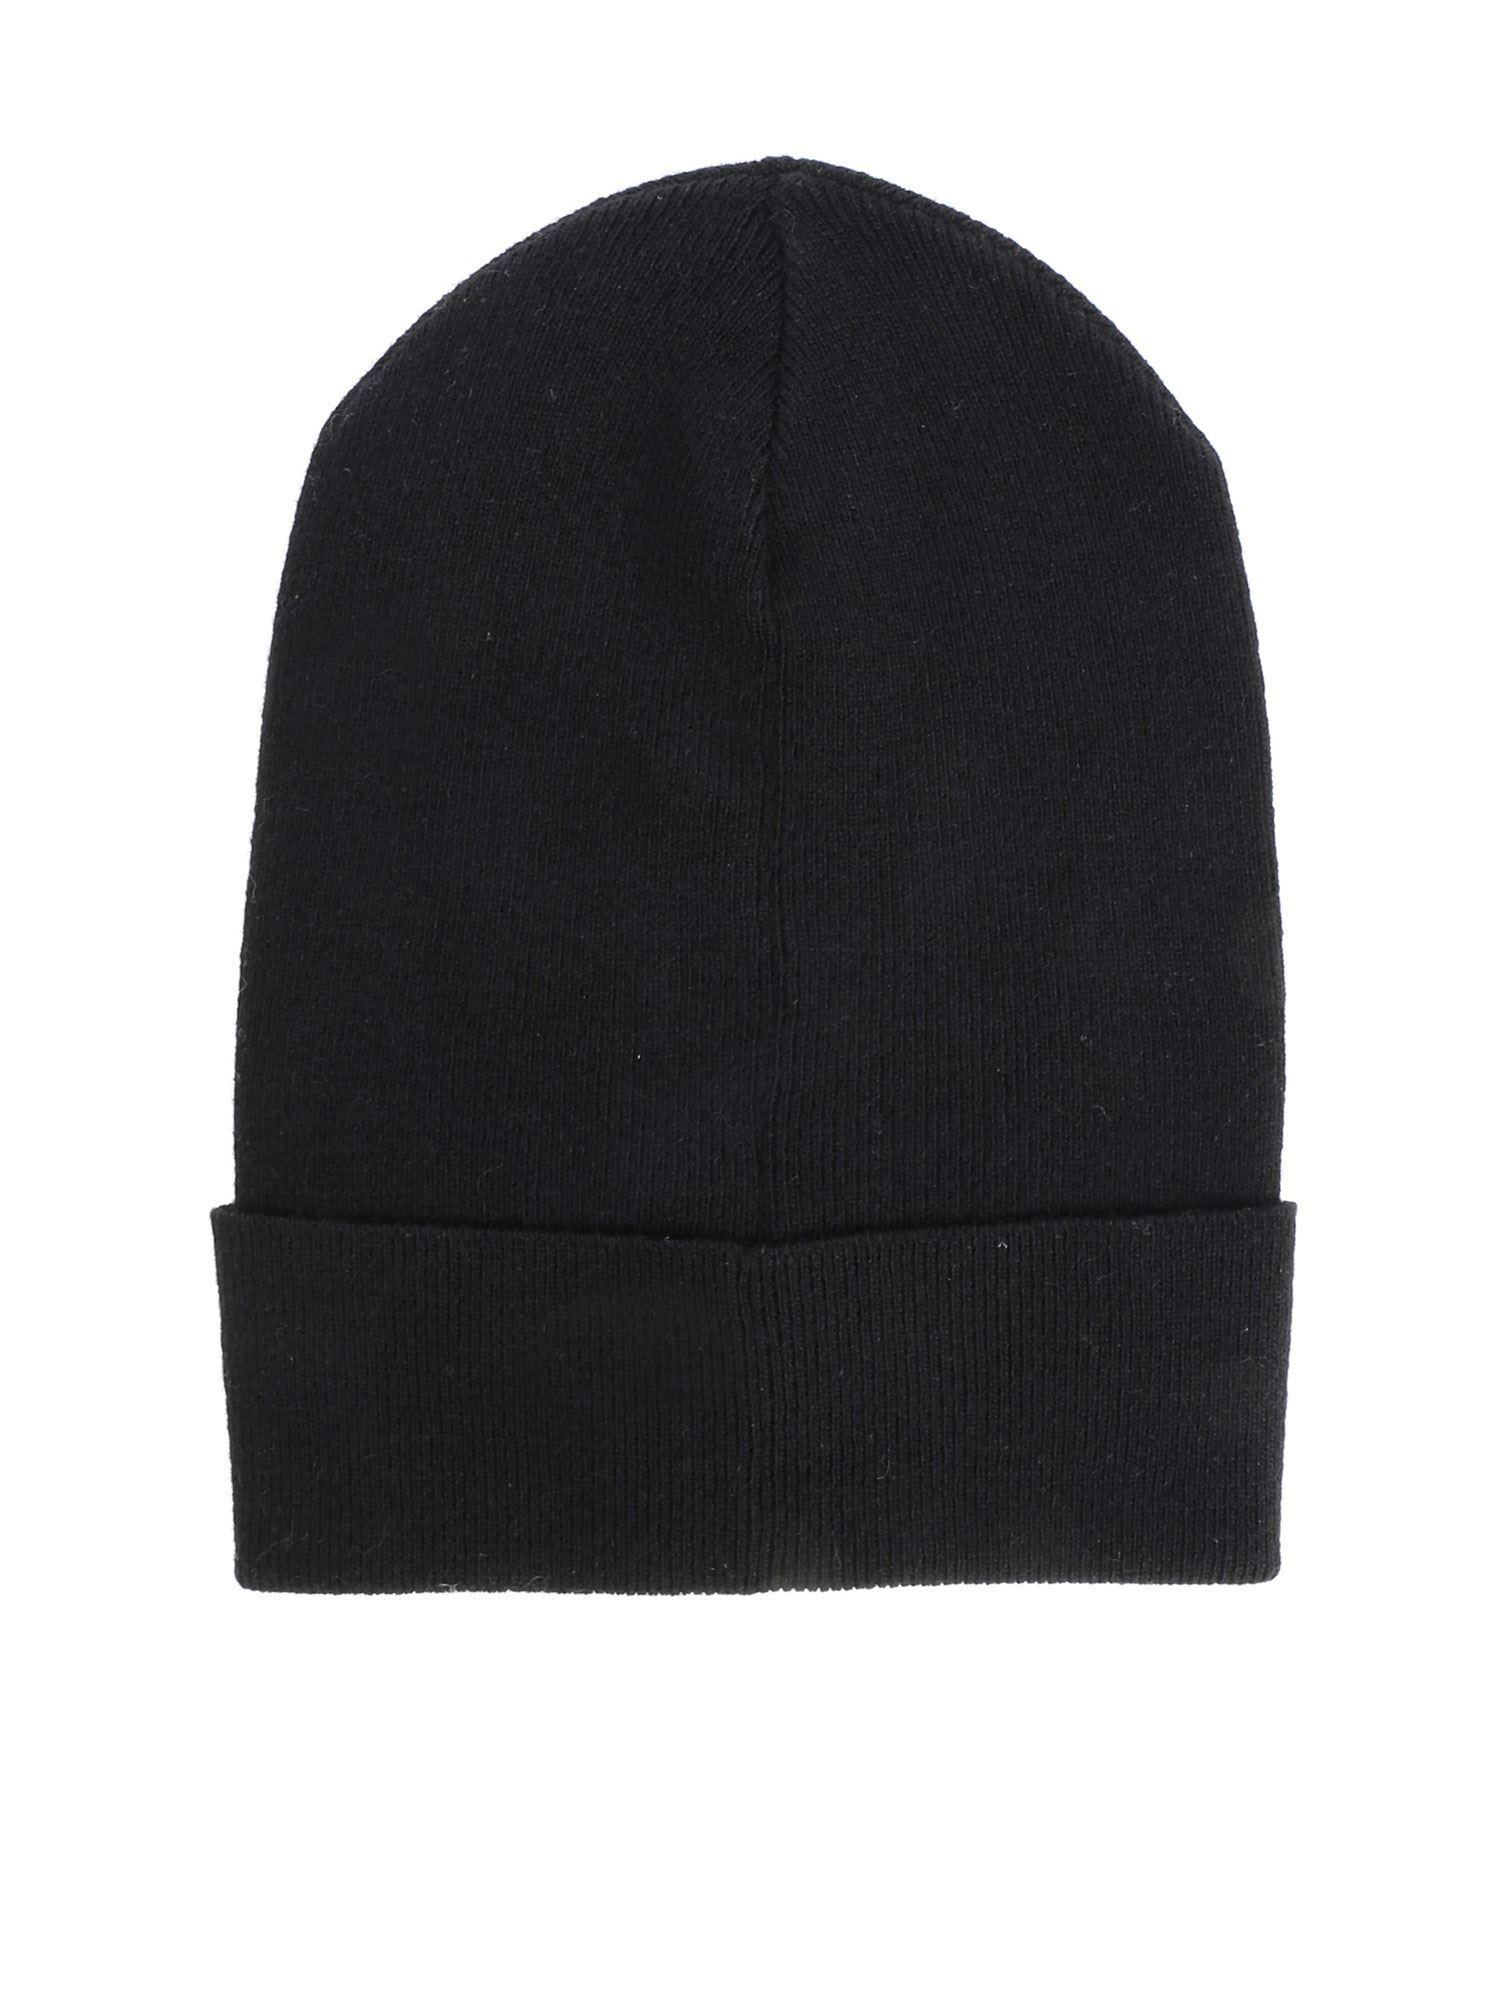 2e450325480 Lyst - Valentino Vltn Black Beanie in Black - Save 40.23529411764706%